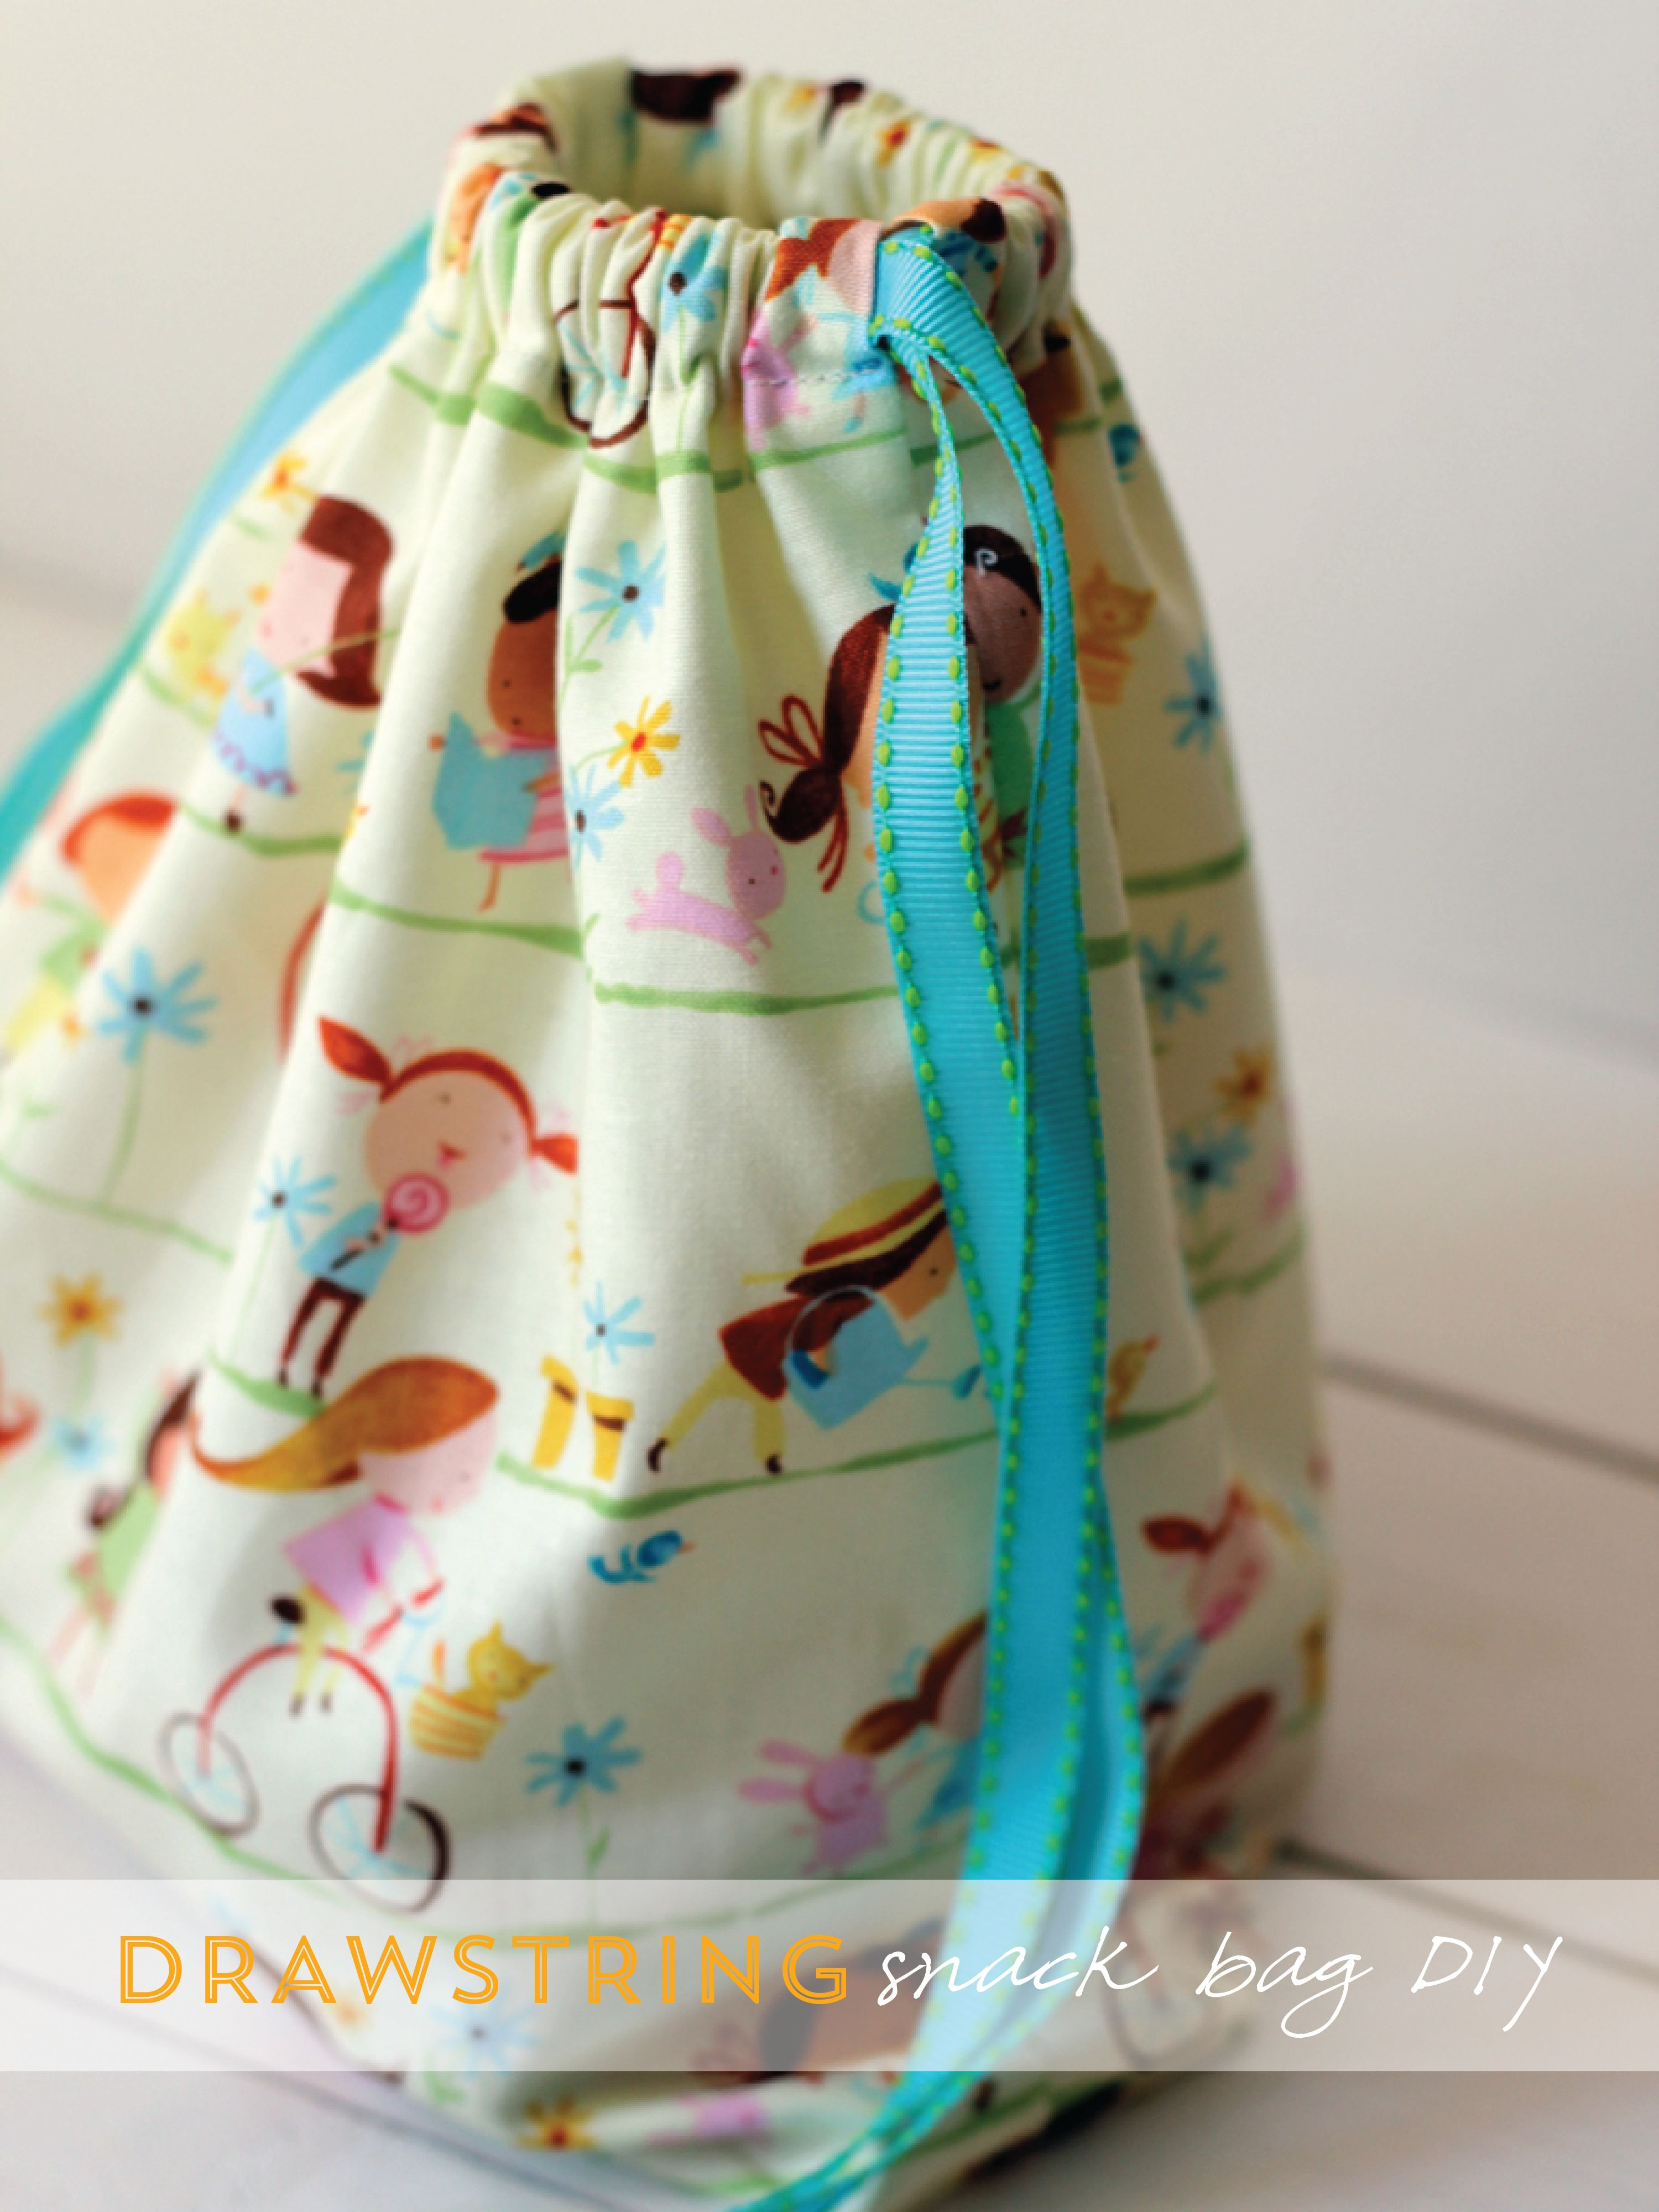 Diy project drawstring snack bag diy sewing projects